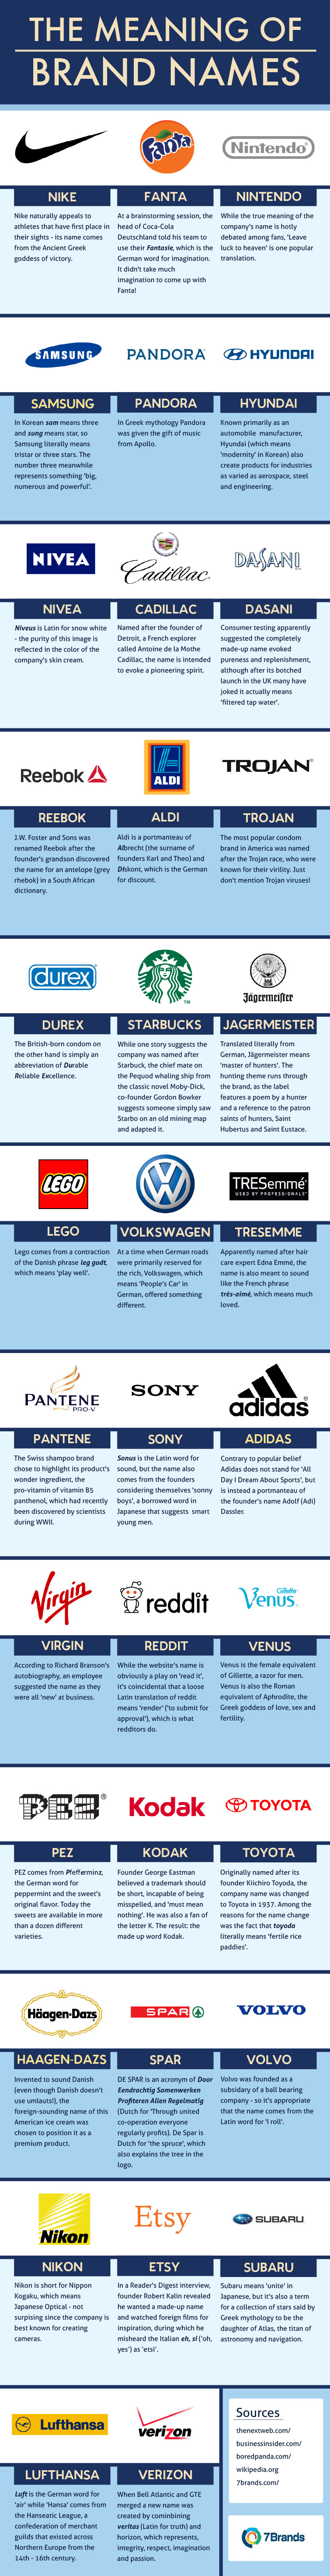 meaning-of-brand-names